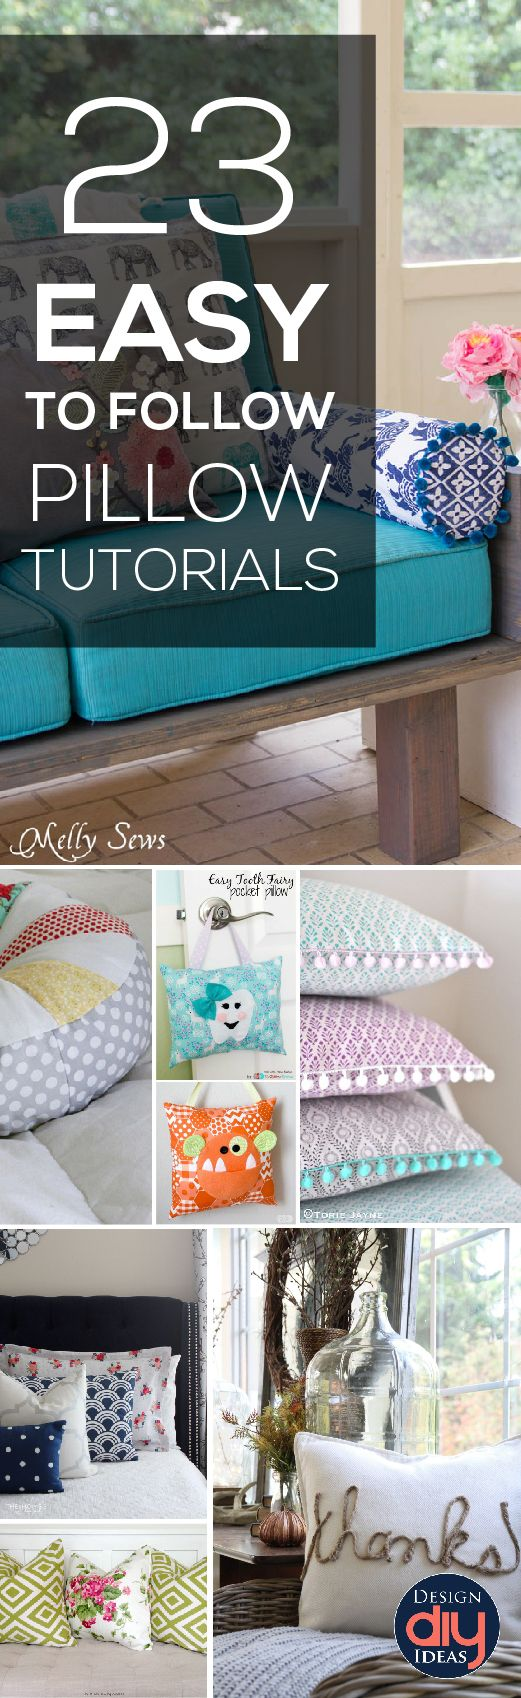 The best images about Подушки on Pinterest Art Cats and Fabrics